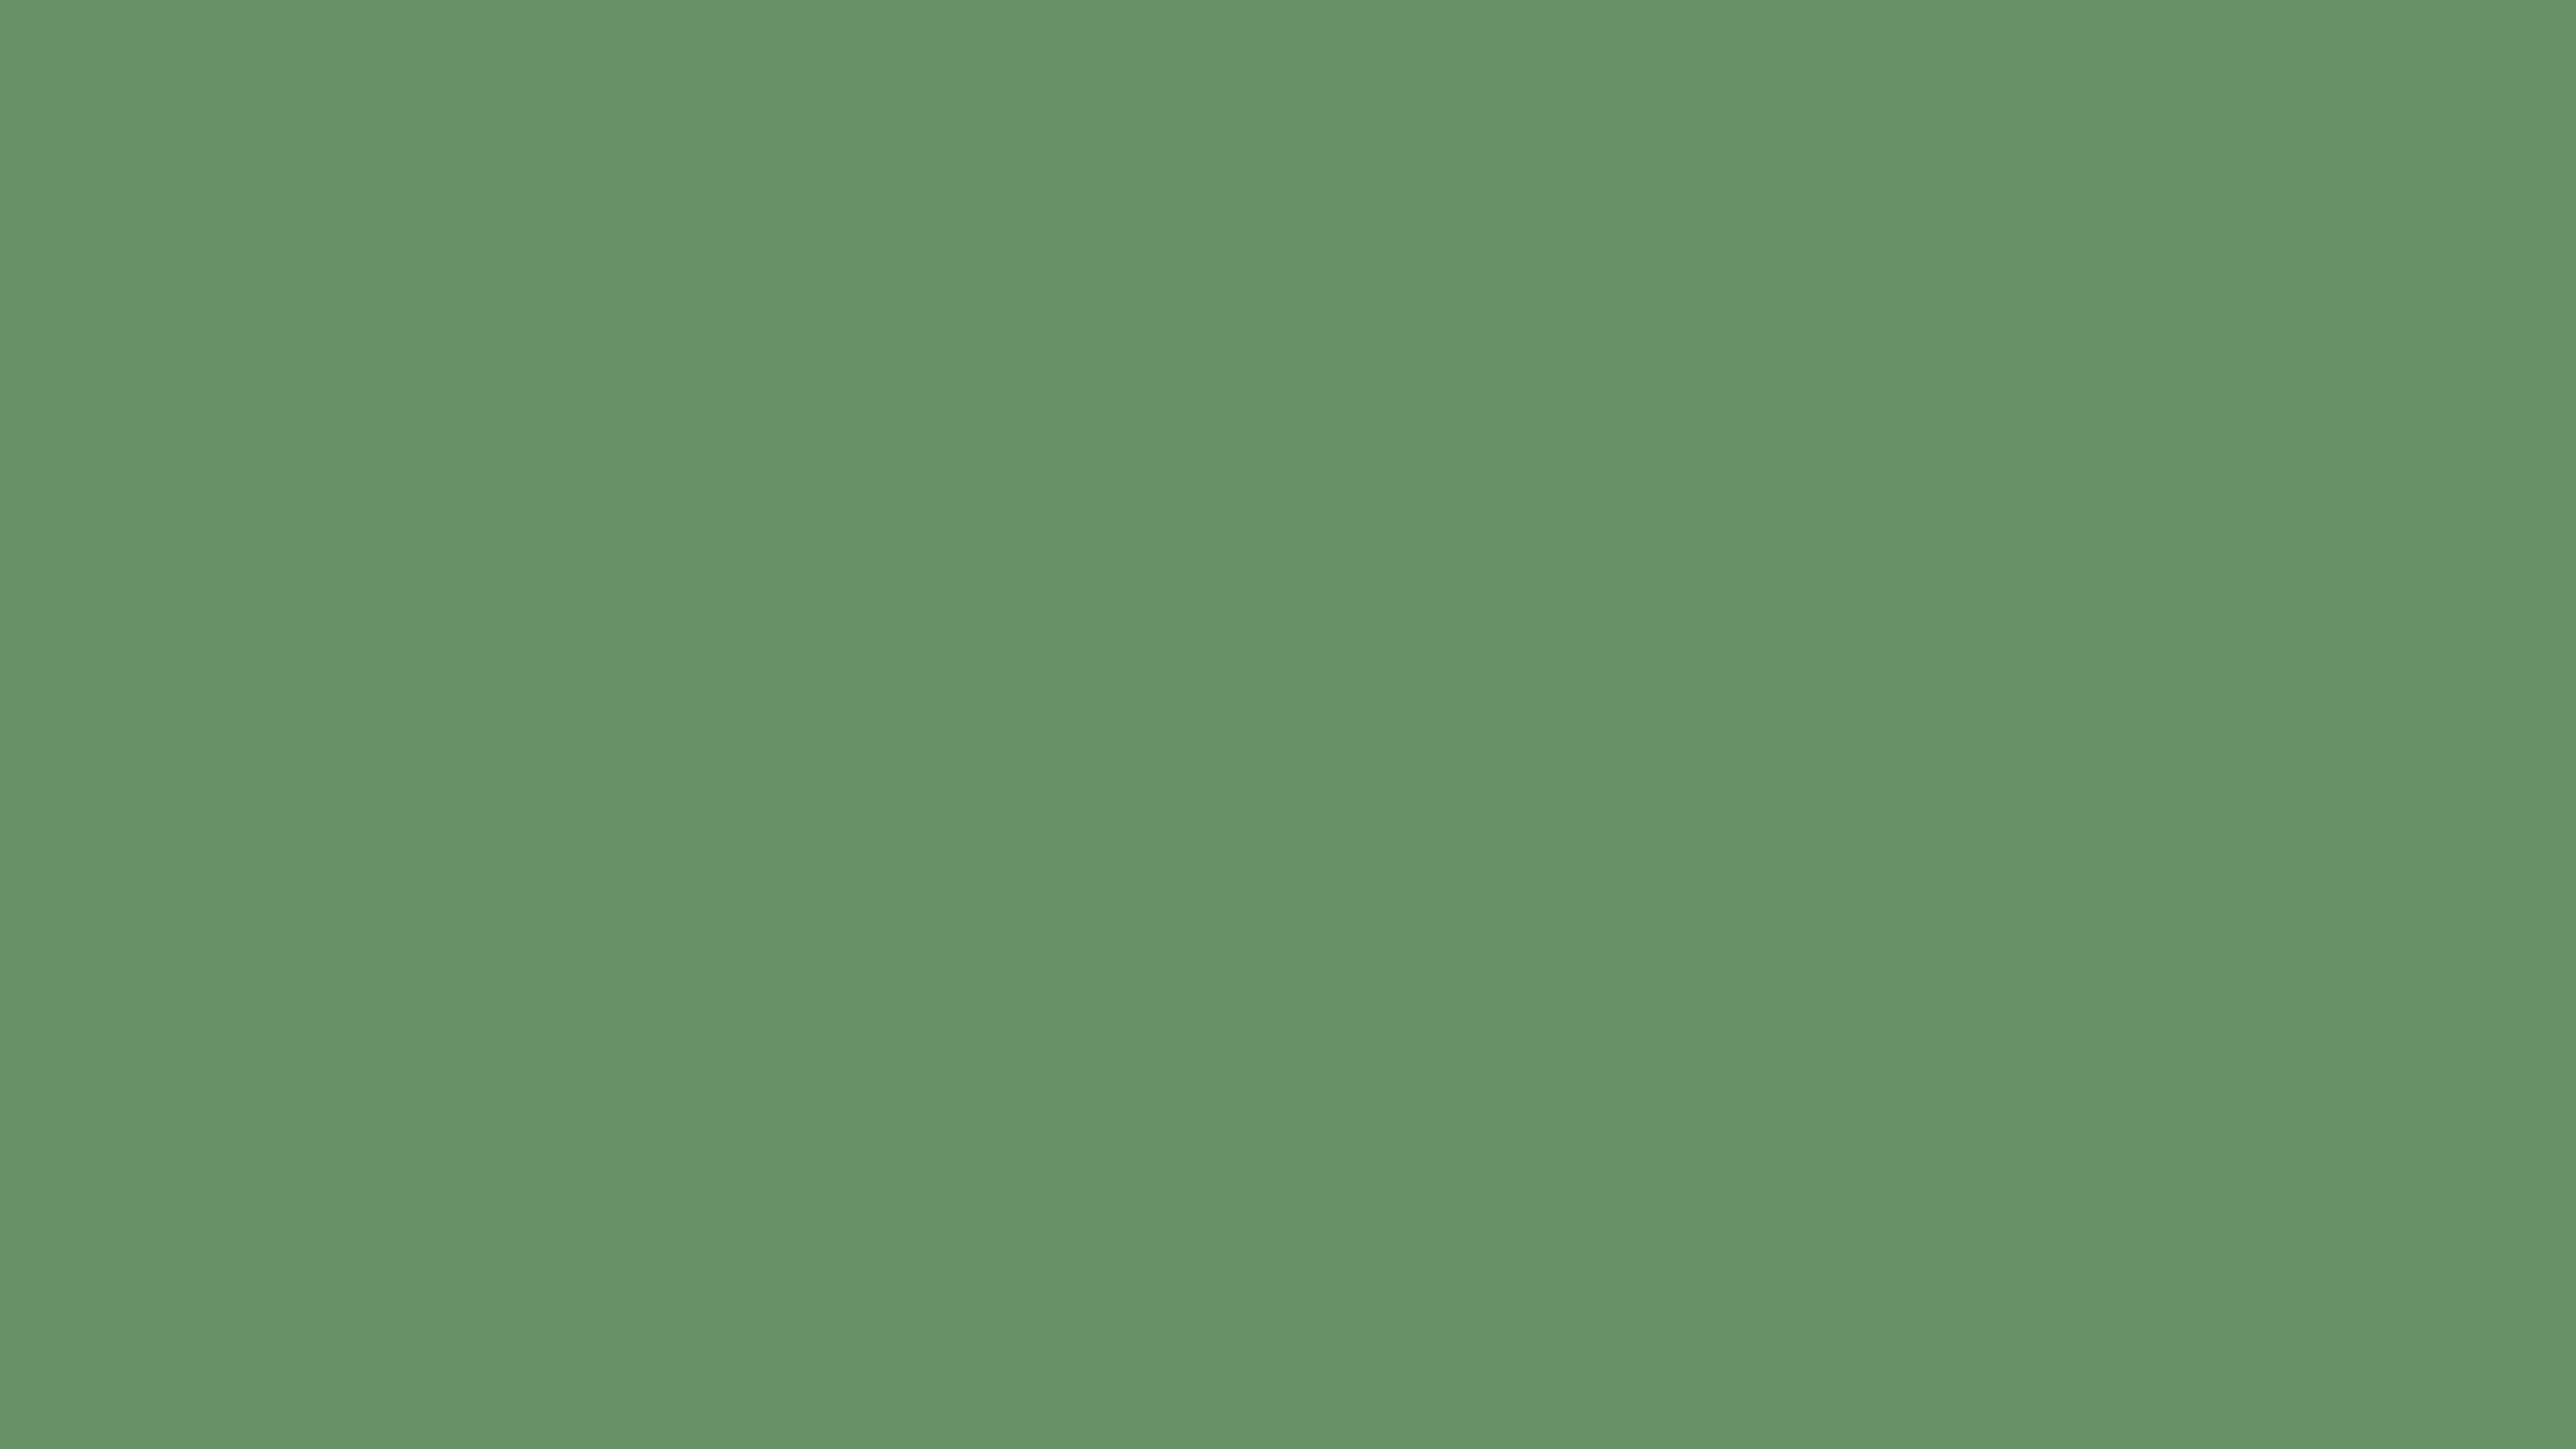 4096x2304 Russian Green Solid Color Background